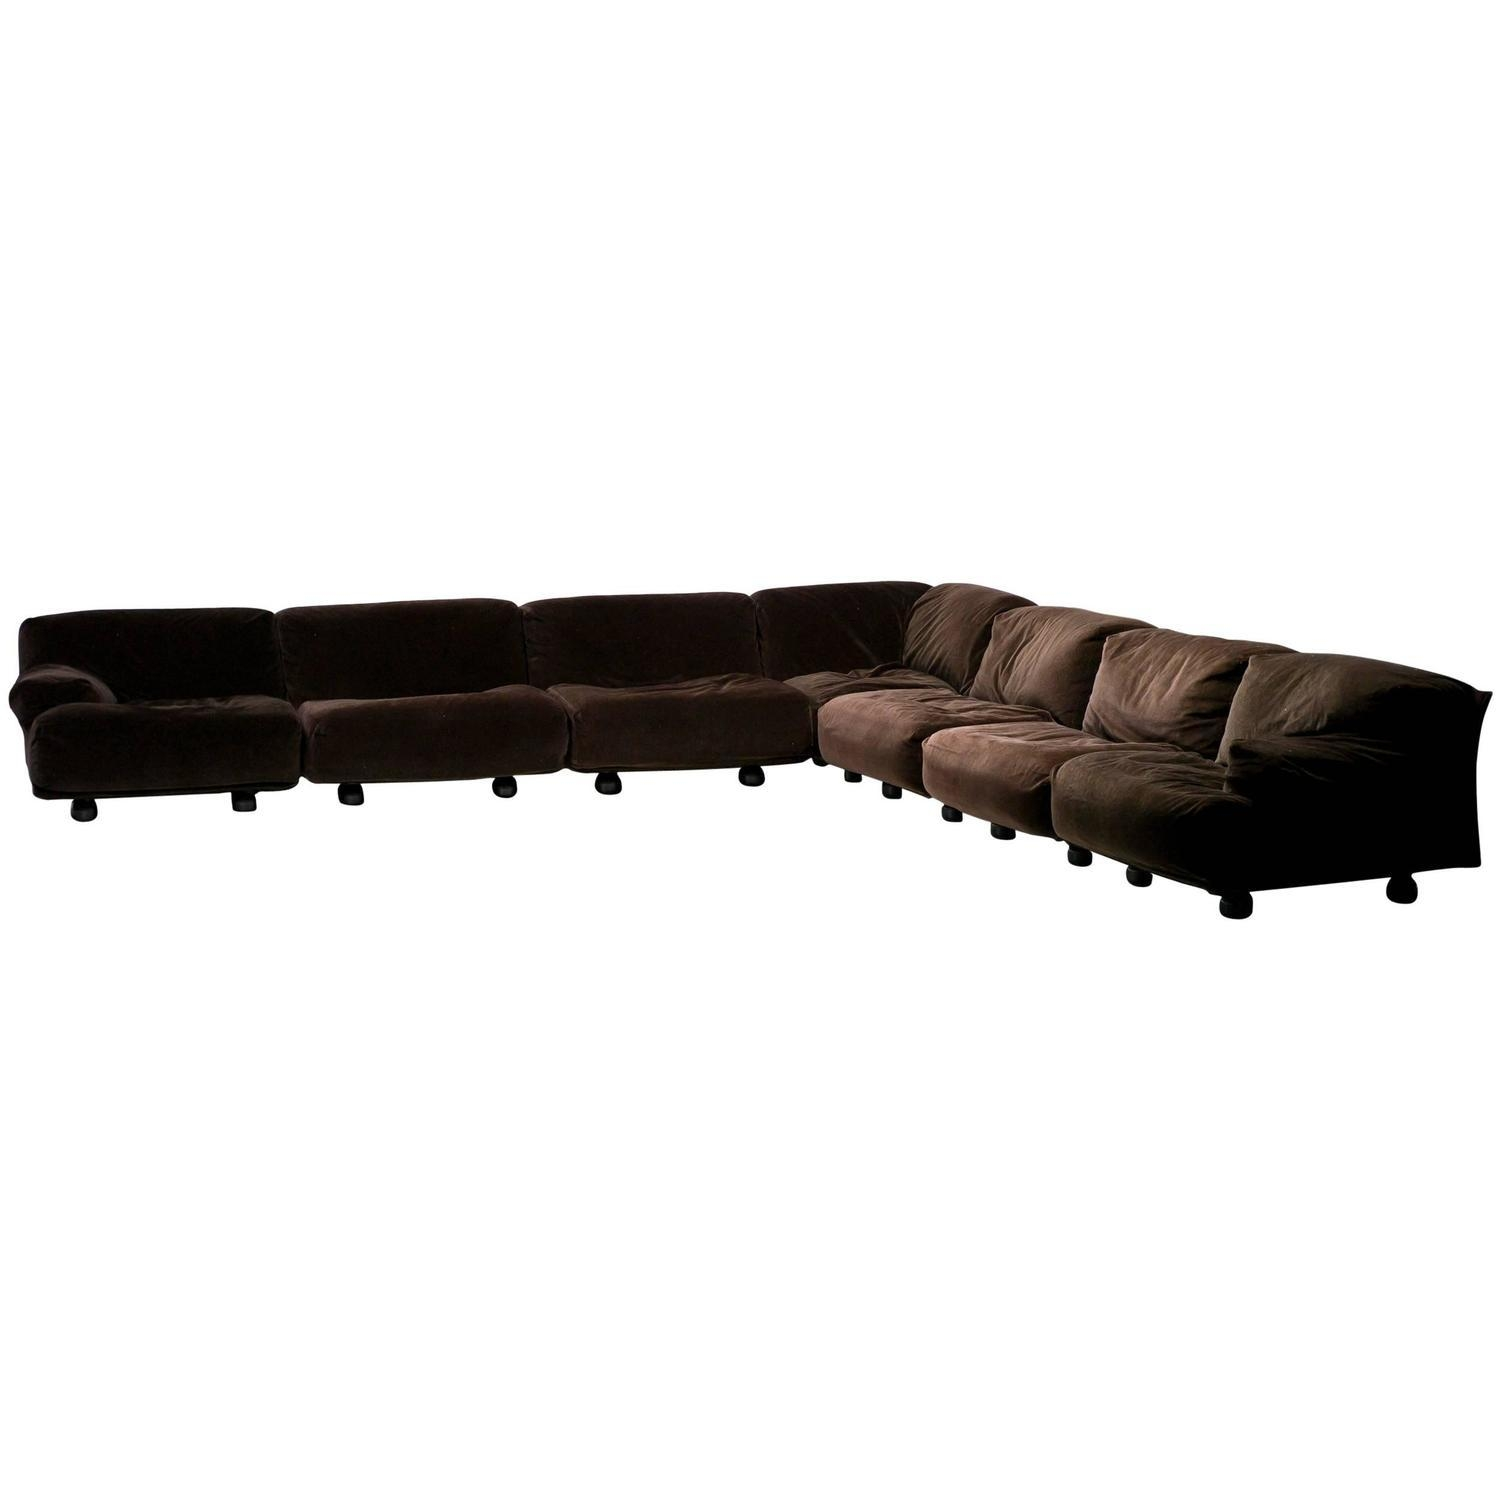 Very Large Modular Fiandra Sofavico Magistretti For Cassina regarding Very Large Sofas